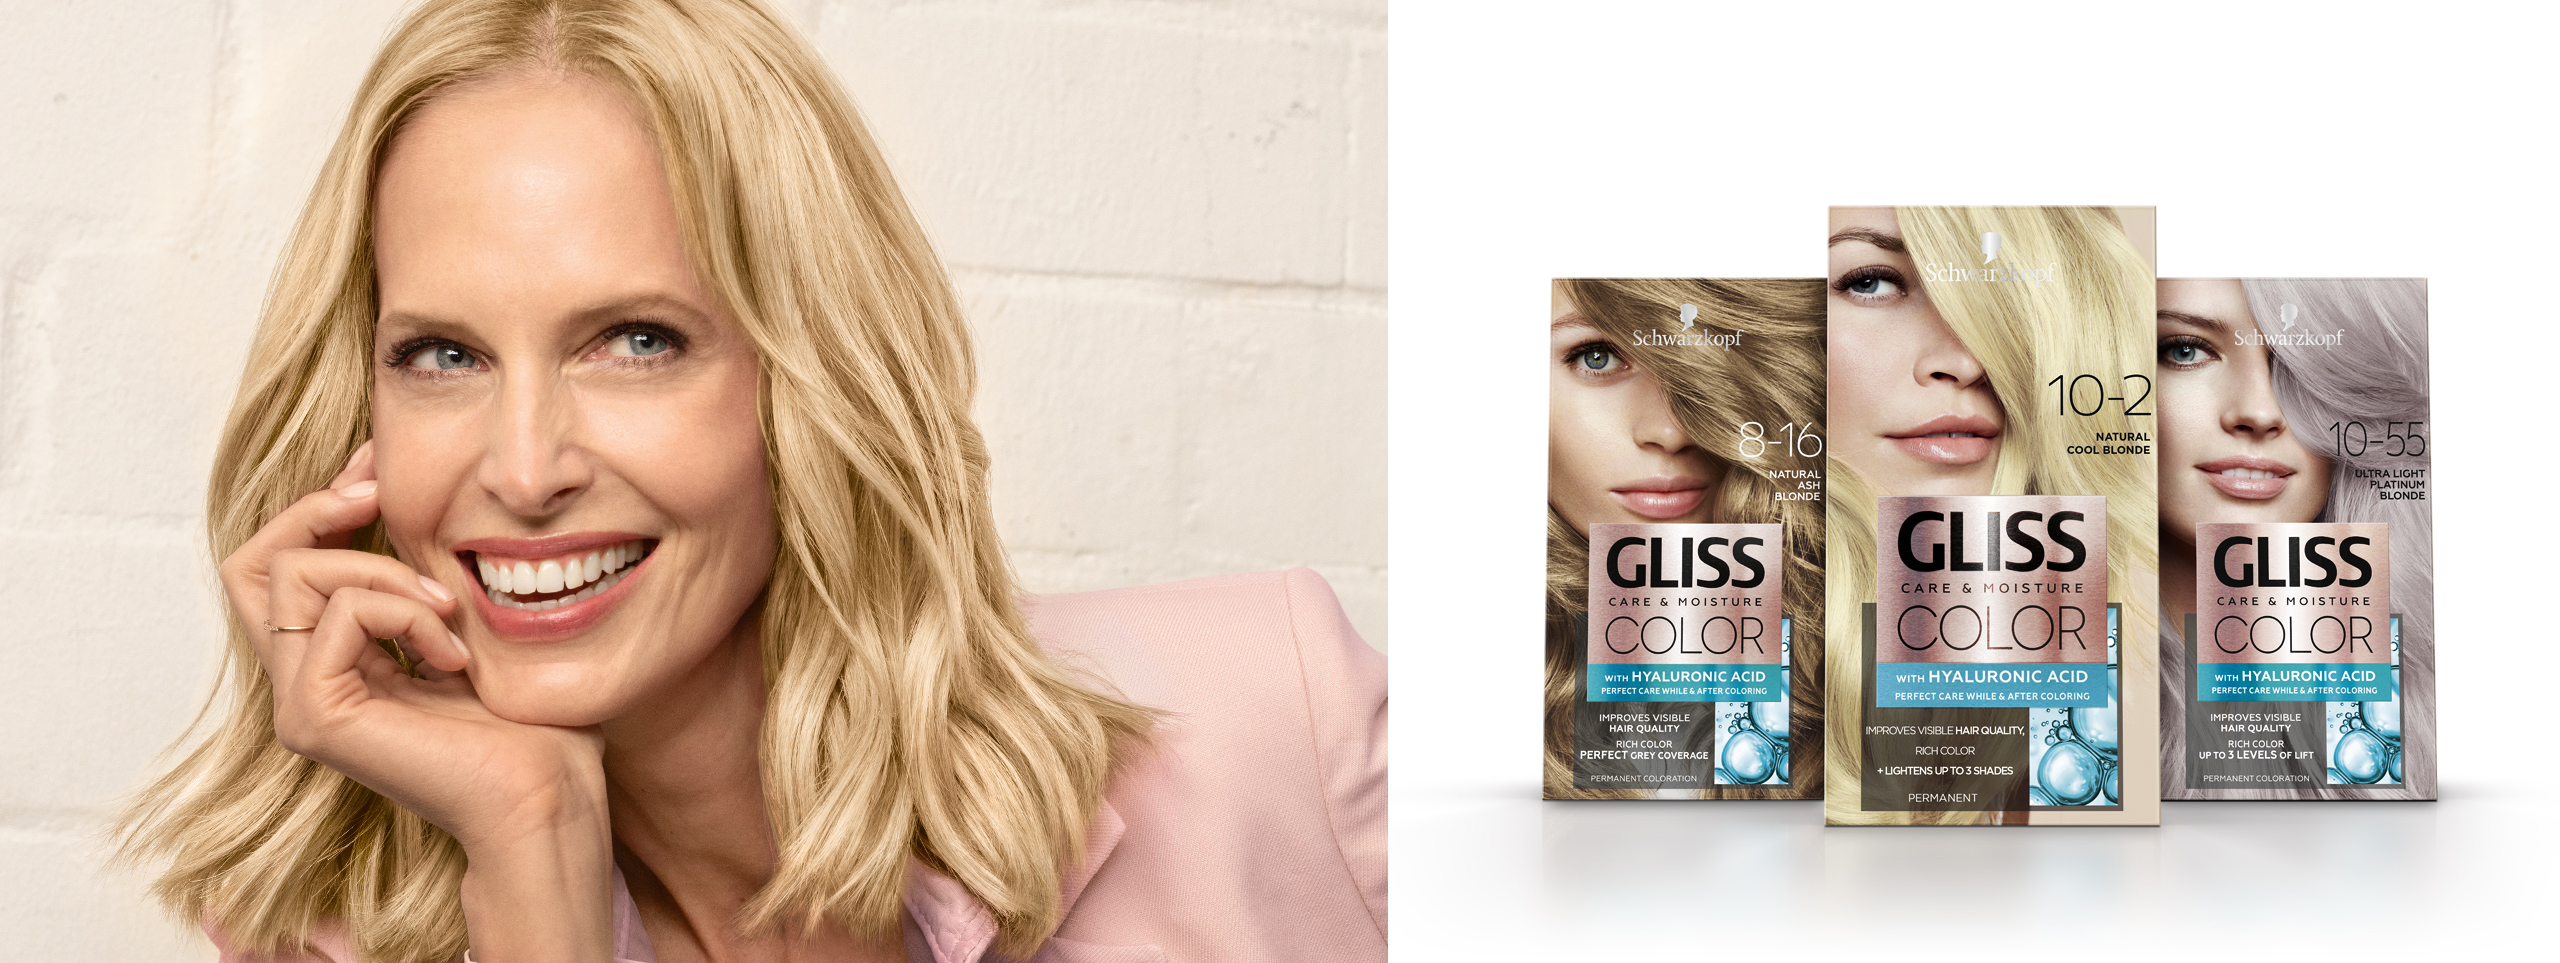 Schwarzkopf_Gliss_Color_Starter_Mood_2560x963_new (1)